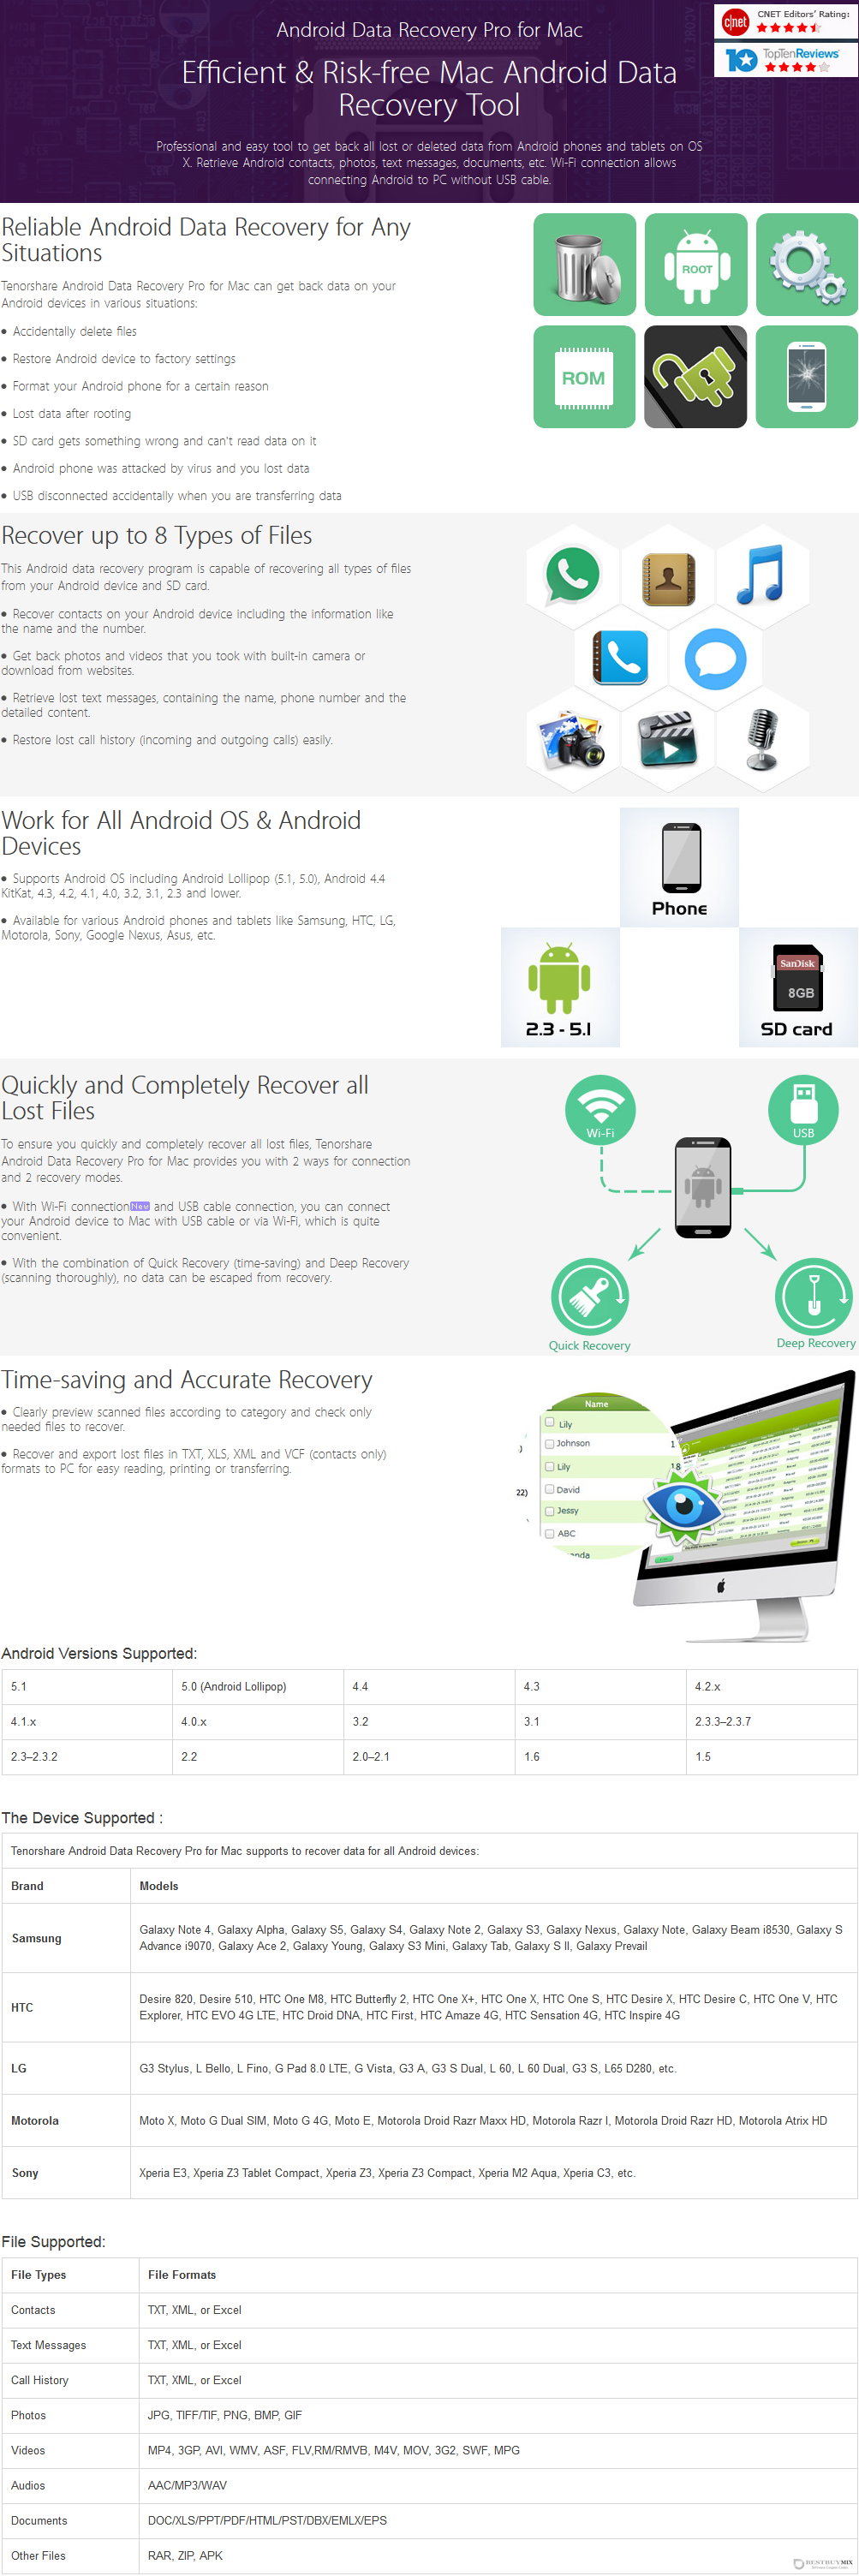 Tenorshare Android Data Recovery for Mac Discount Coupon Code